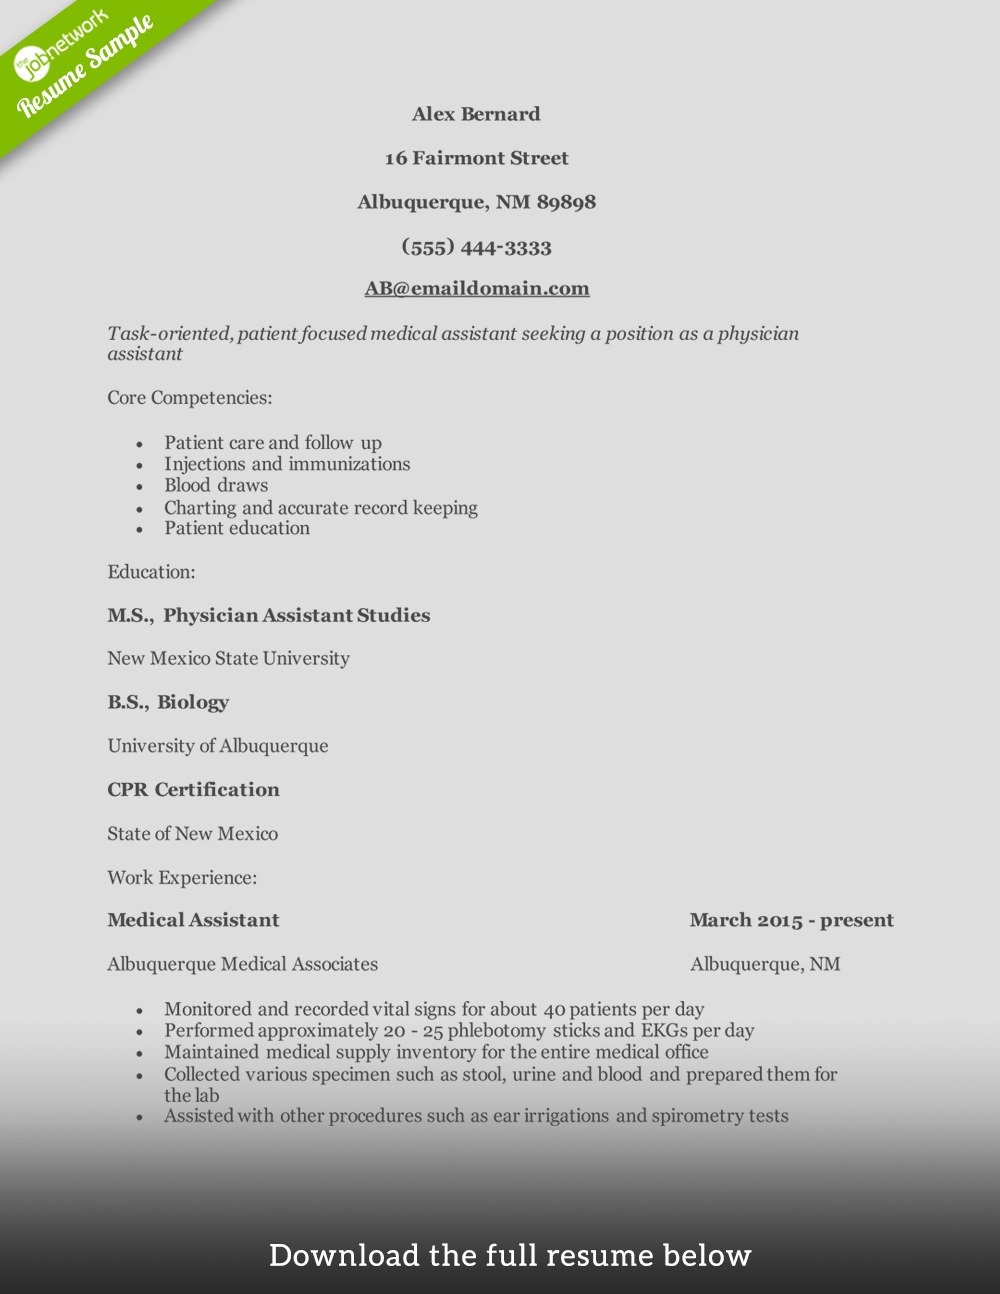 How to Write a Perfect Physician Assistant Resume (Examples ...